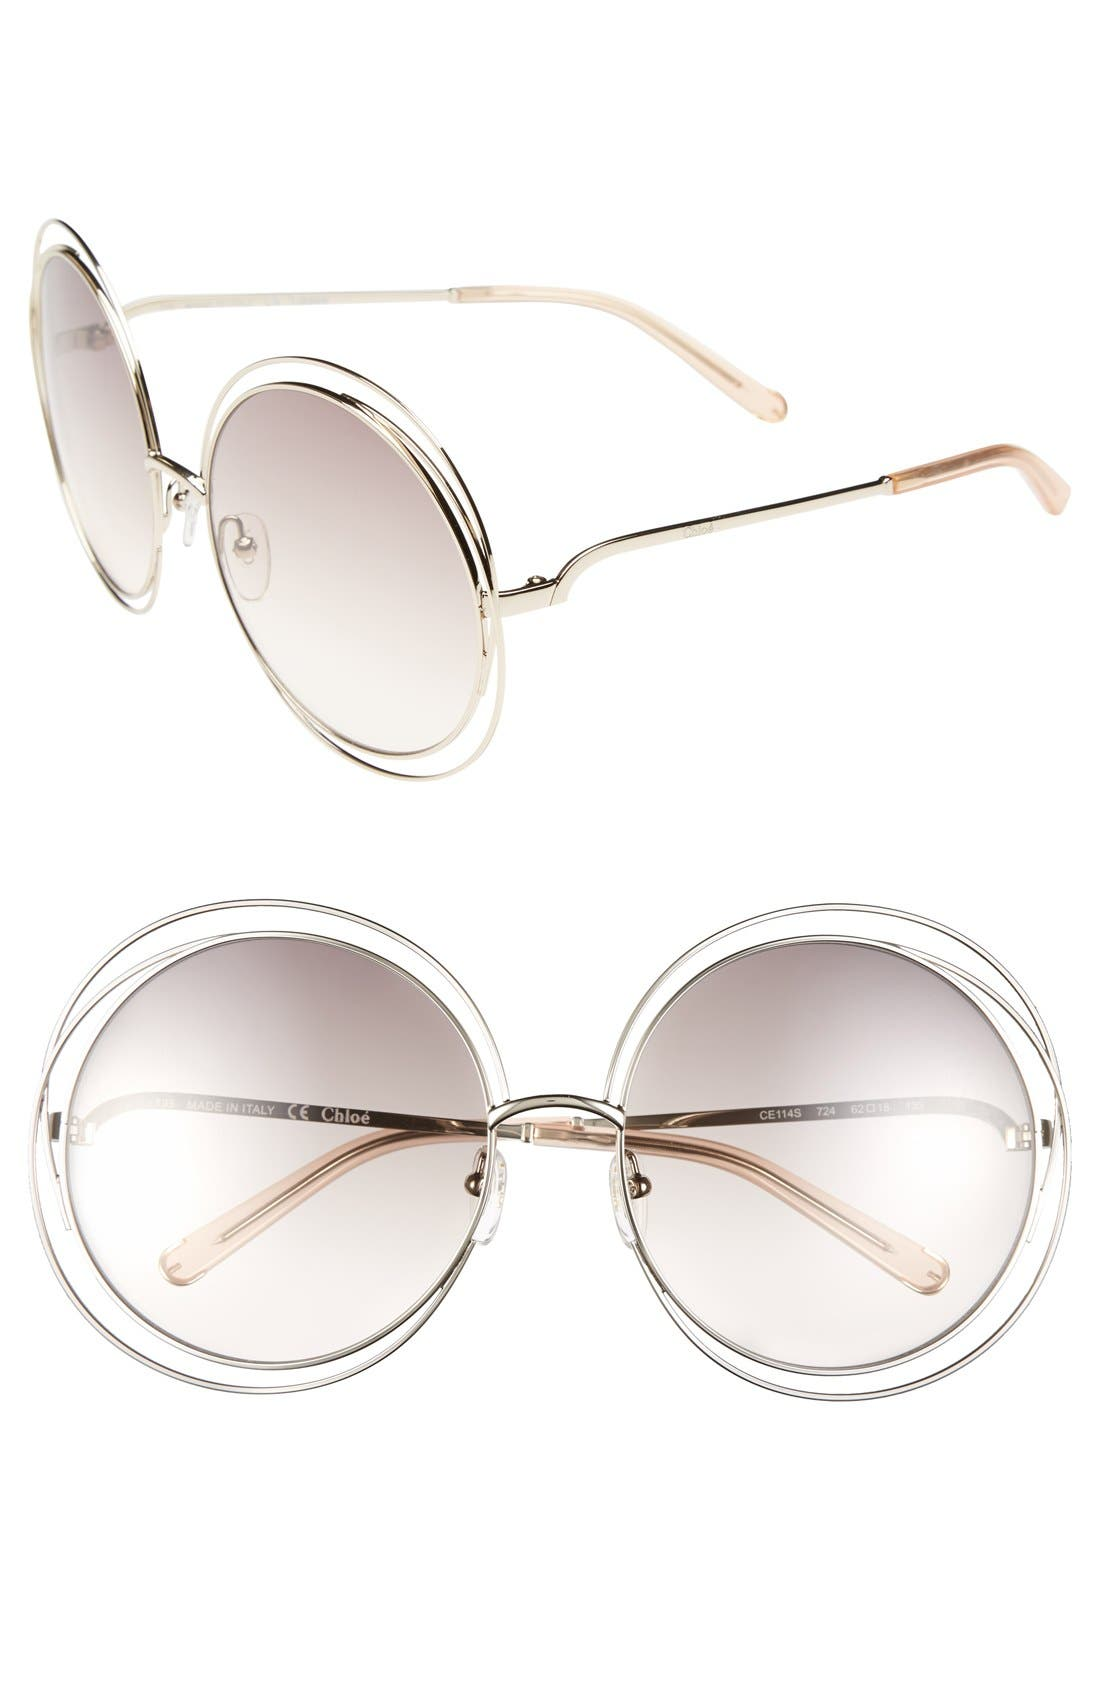 62mm Oversize Sunglasses,                         Main,                         color, GOLD/ TRANSPARENT PEACH